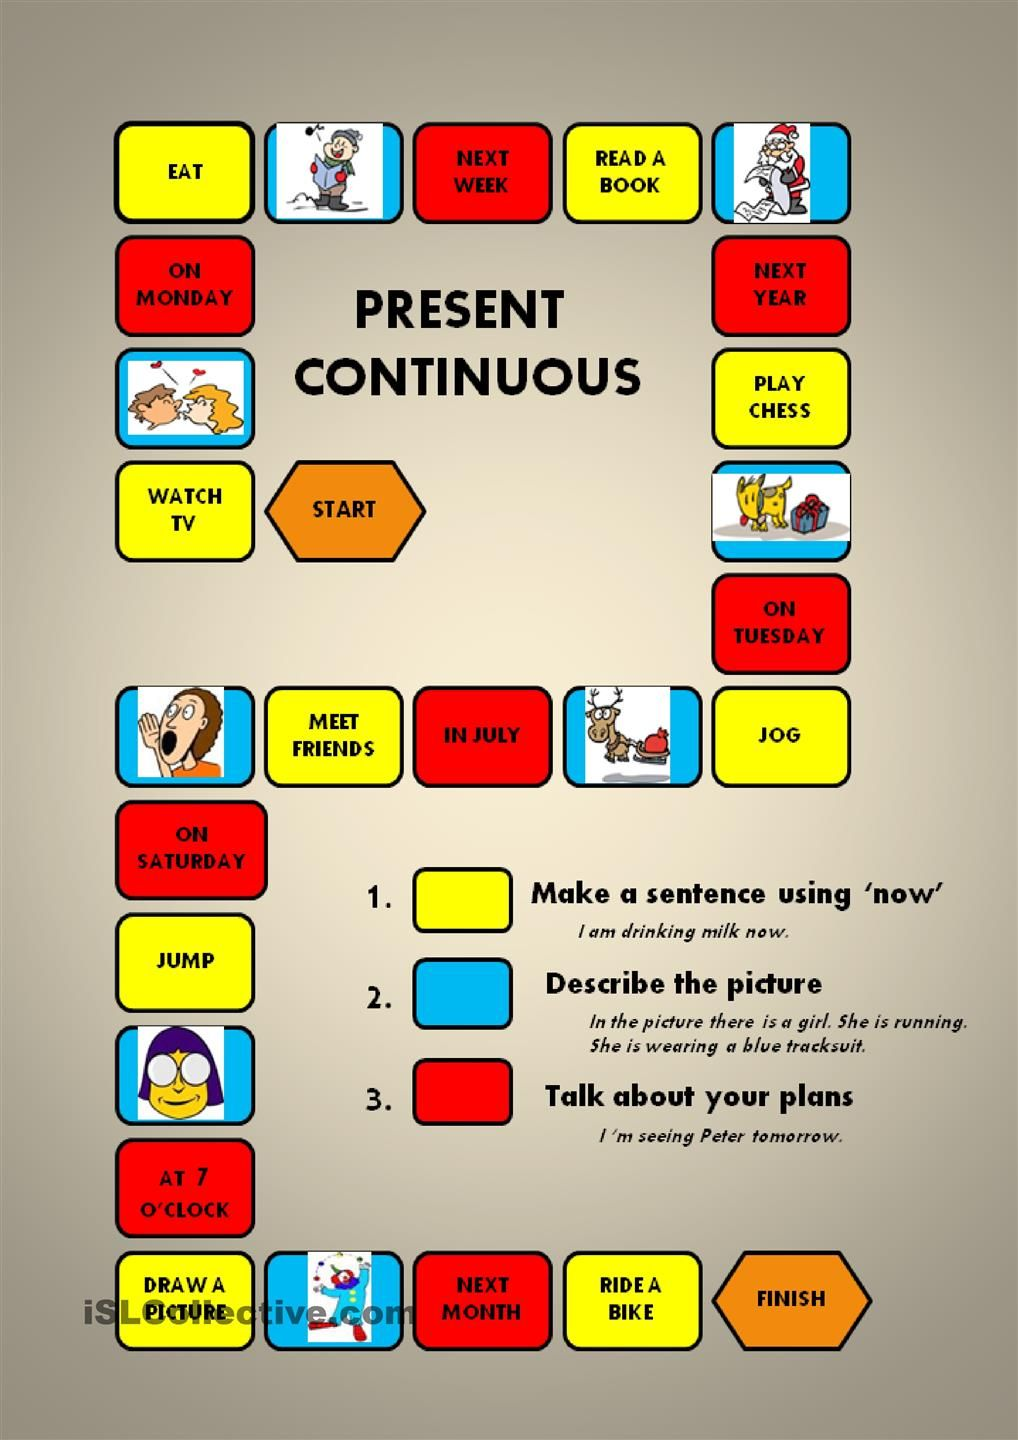 Present Continuous - a boardgame | English | Pinterest ...